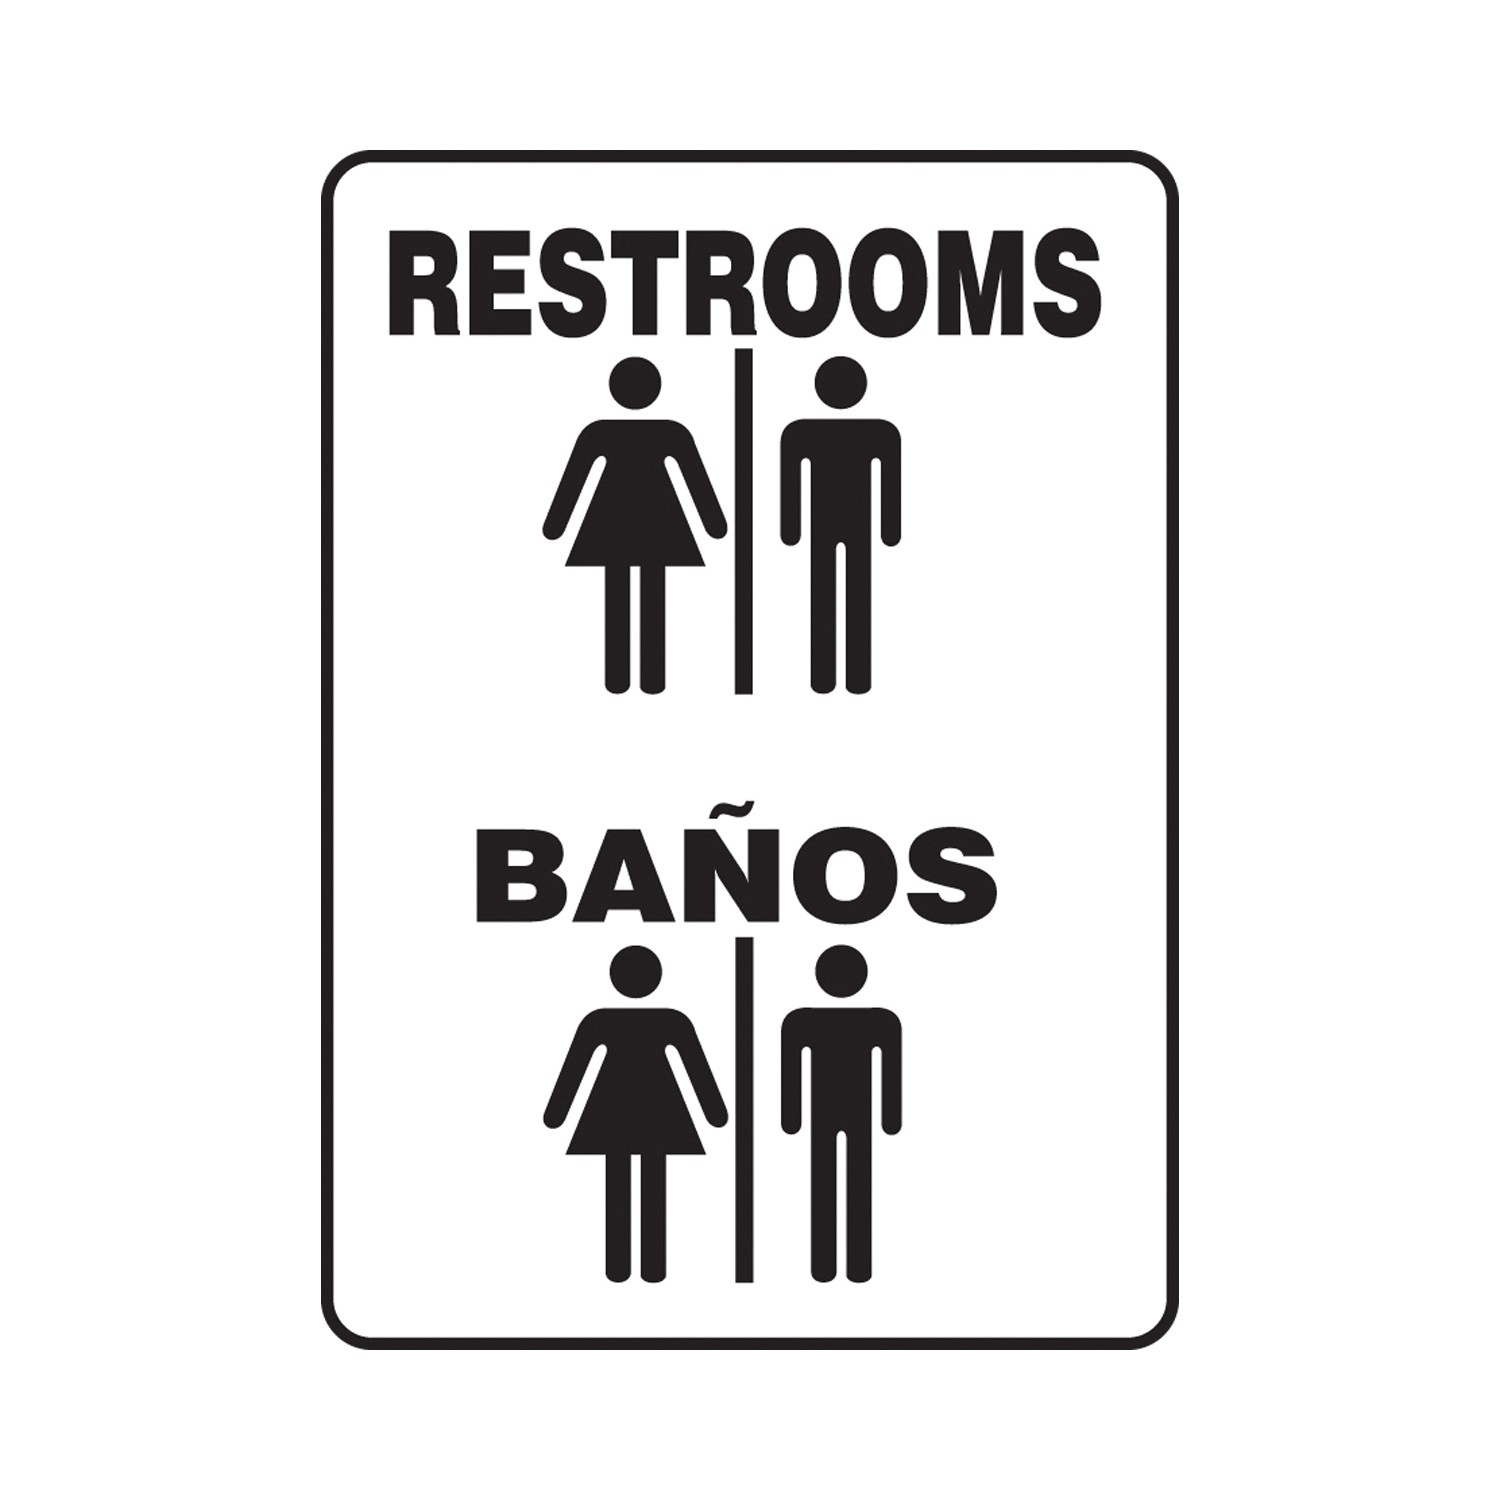 Accuform® SBMRST528XV Restroom Sign, 14 in H x 10 in W, 6 mil Adhesive Dura-Vinyl